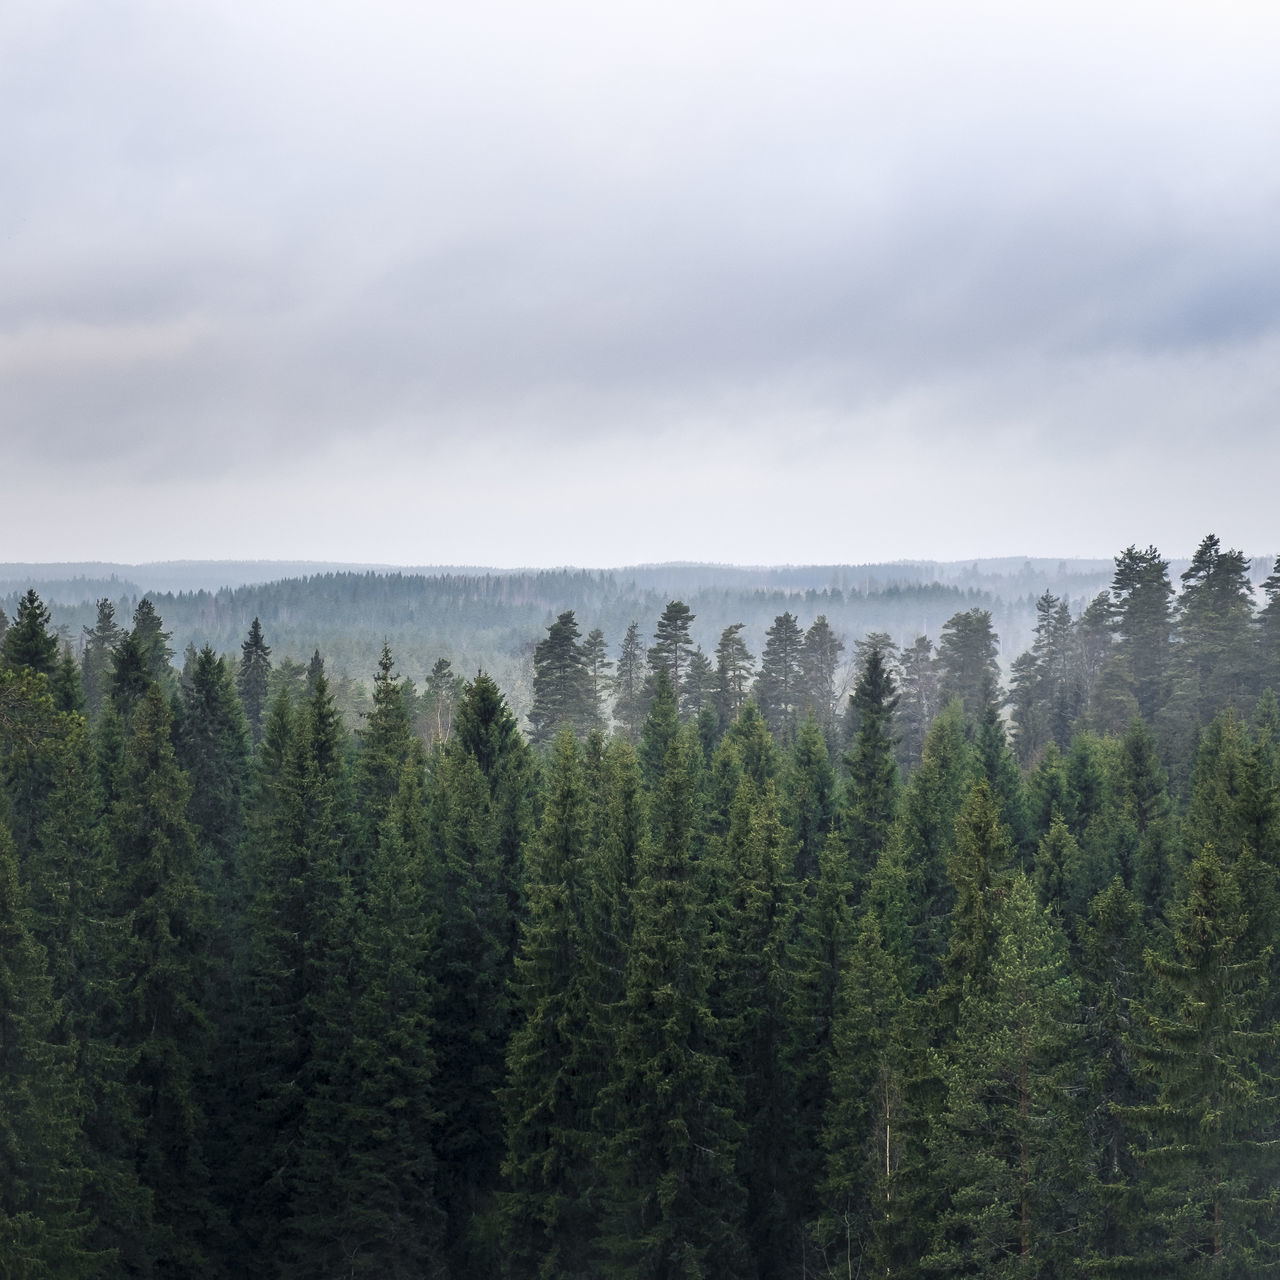 Scenic forest view Clouds And Sky Cloudy Day Fog Foggy Forest Gloomy Weather Horizon Landscape Mist Misty Nature No People Outdoors Scenics Spruce Tree Tree Trees